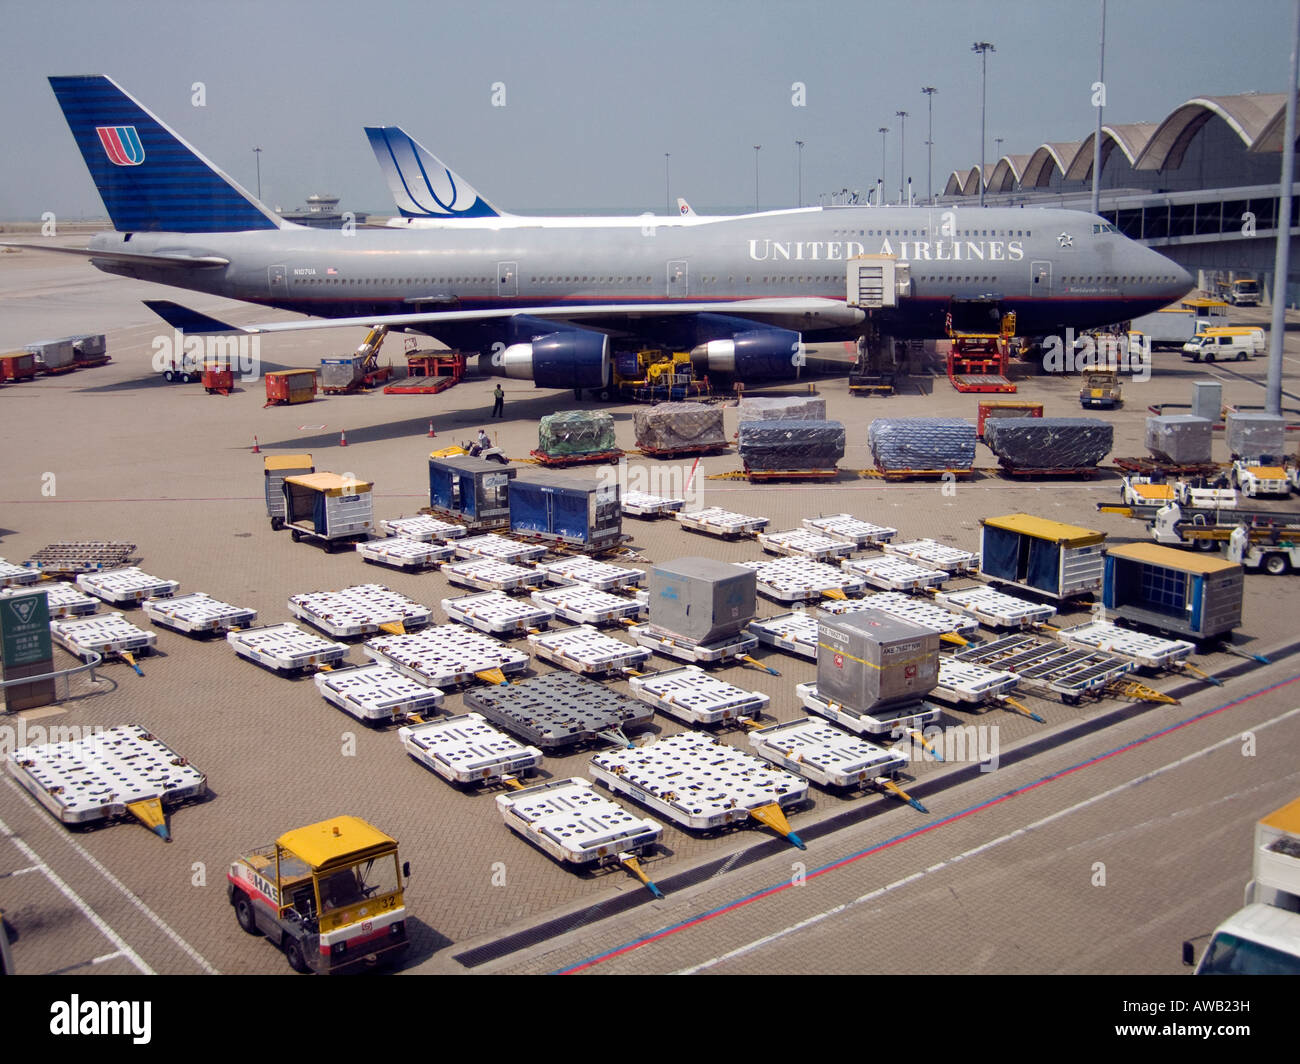 A commercial airplane docked at Hong Kong's Chek Lap Kok International Airport at  is ready for loading baggage - Stock Image